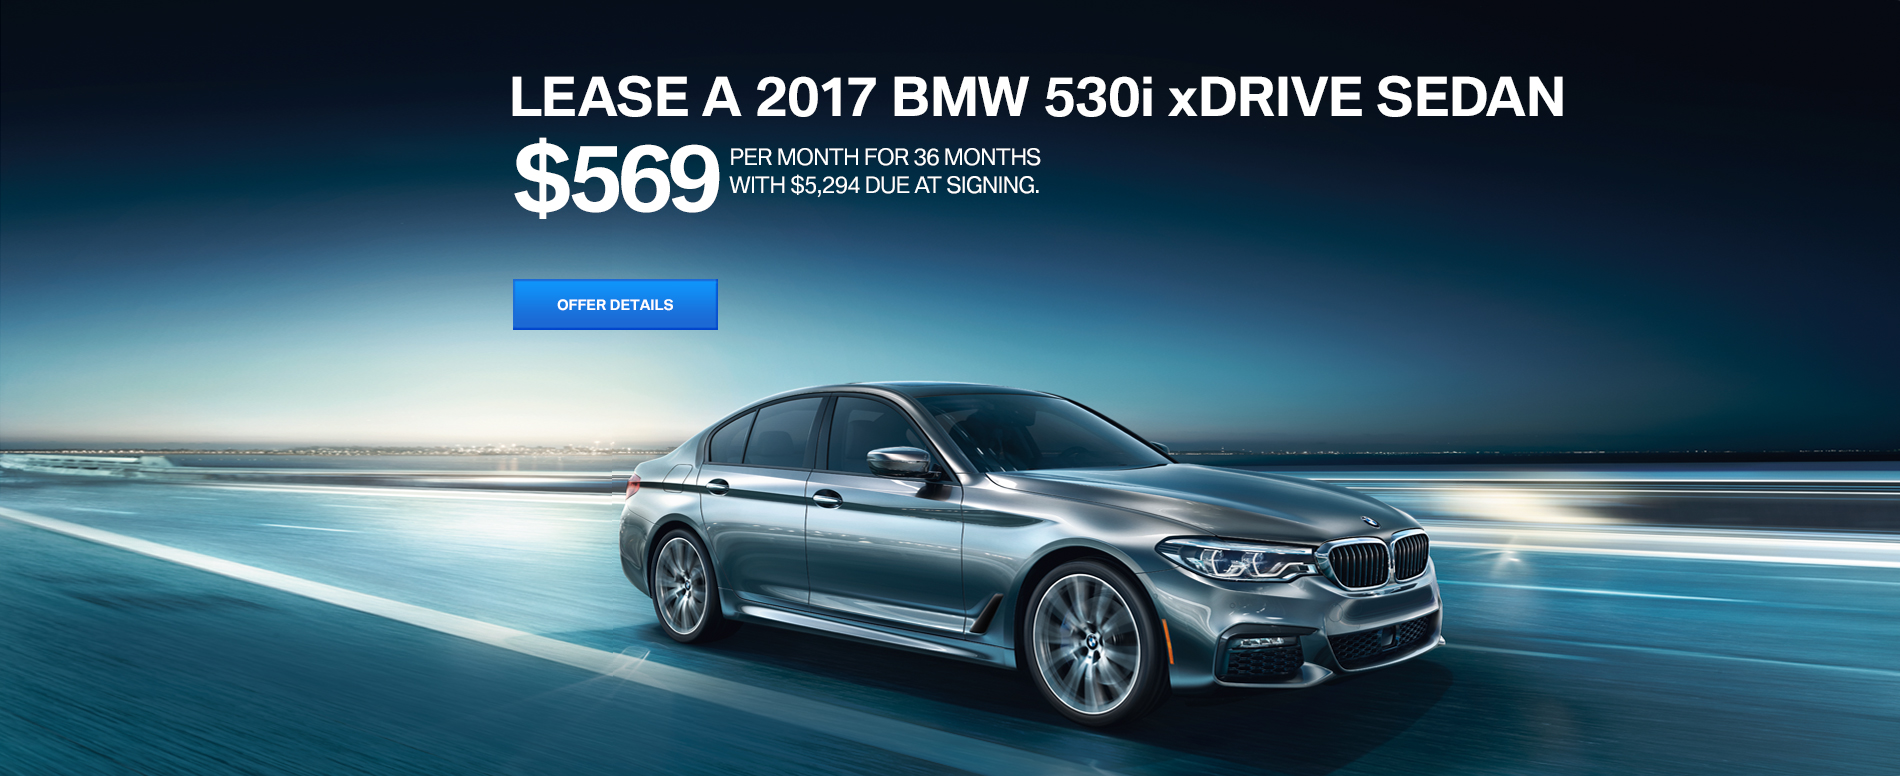 LEASE A 2017 530i xDRIVE FOR $569/MO FOR 36 MONTHS, WITH $5,294